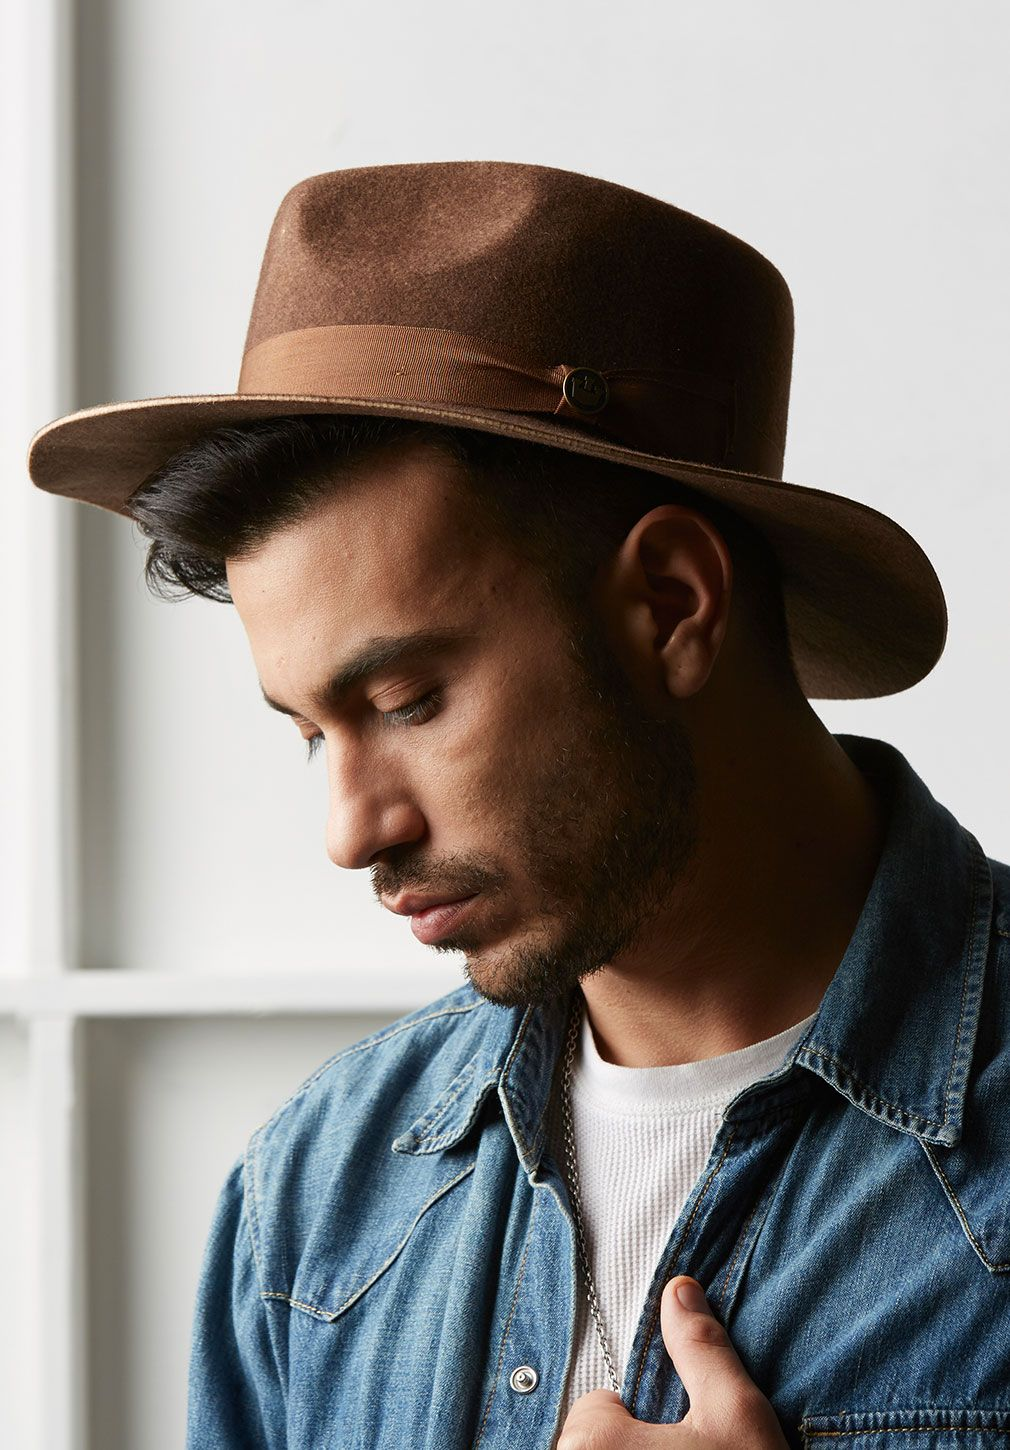 Men's Hats: Free Shipping on orders over $45 at Shop our collection to find the right style for you from dvlnpxiuf.ga Your Online Hats Store! Get 5% in rewards with Club O!